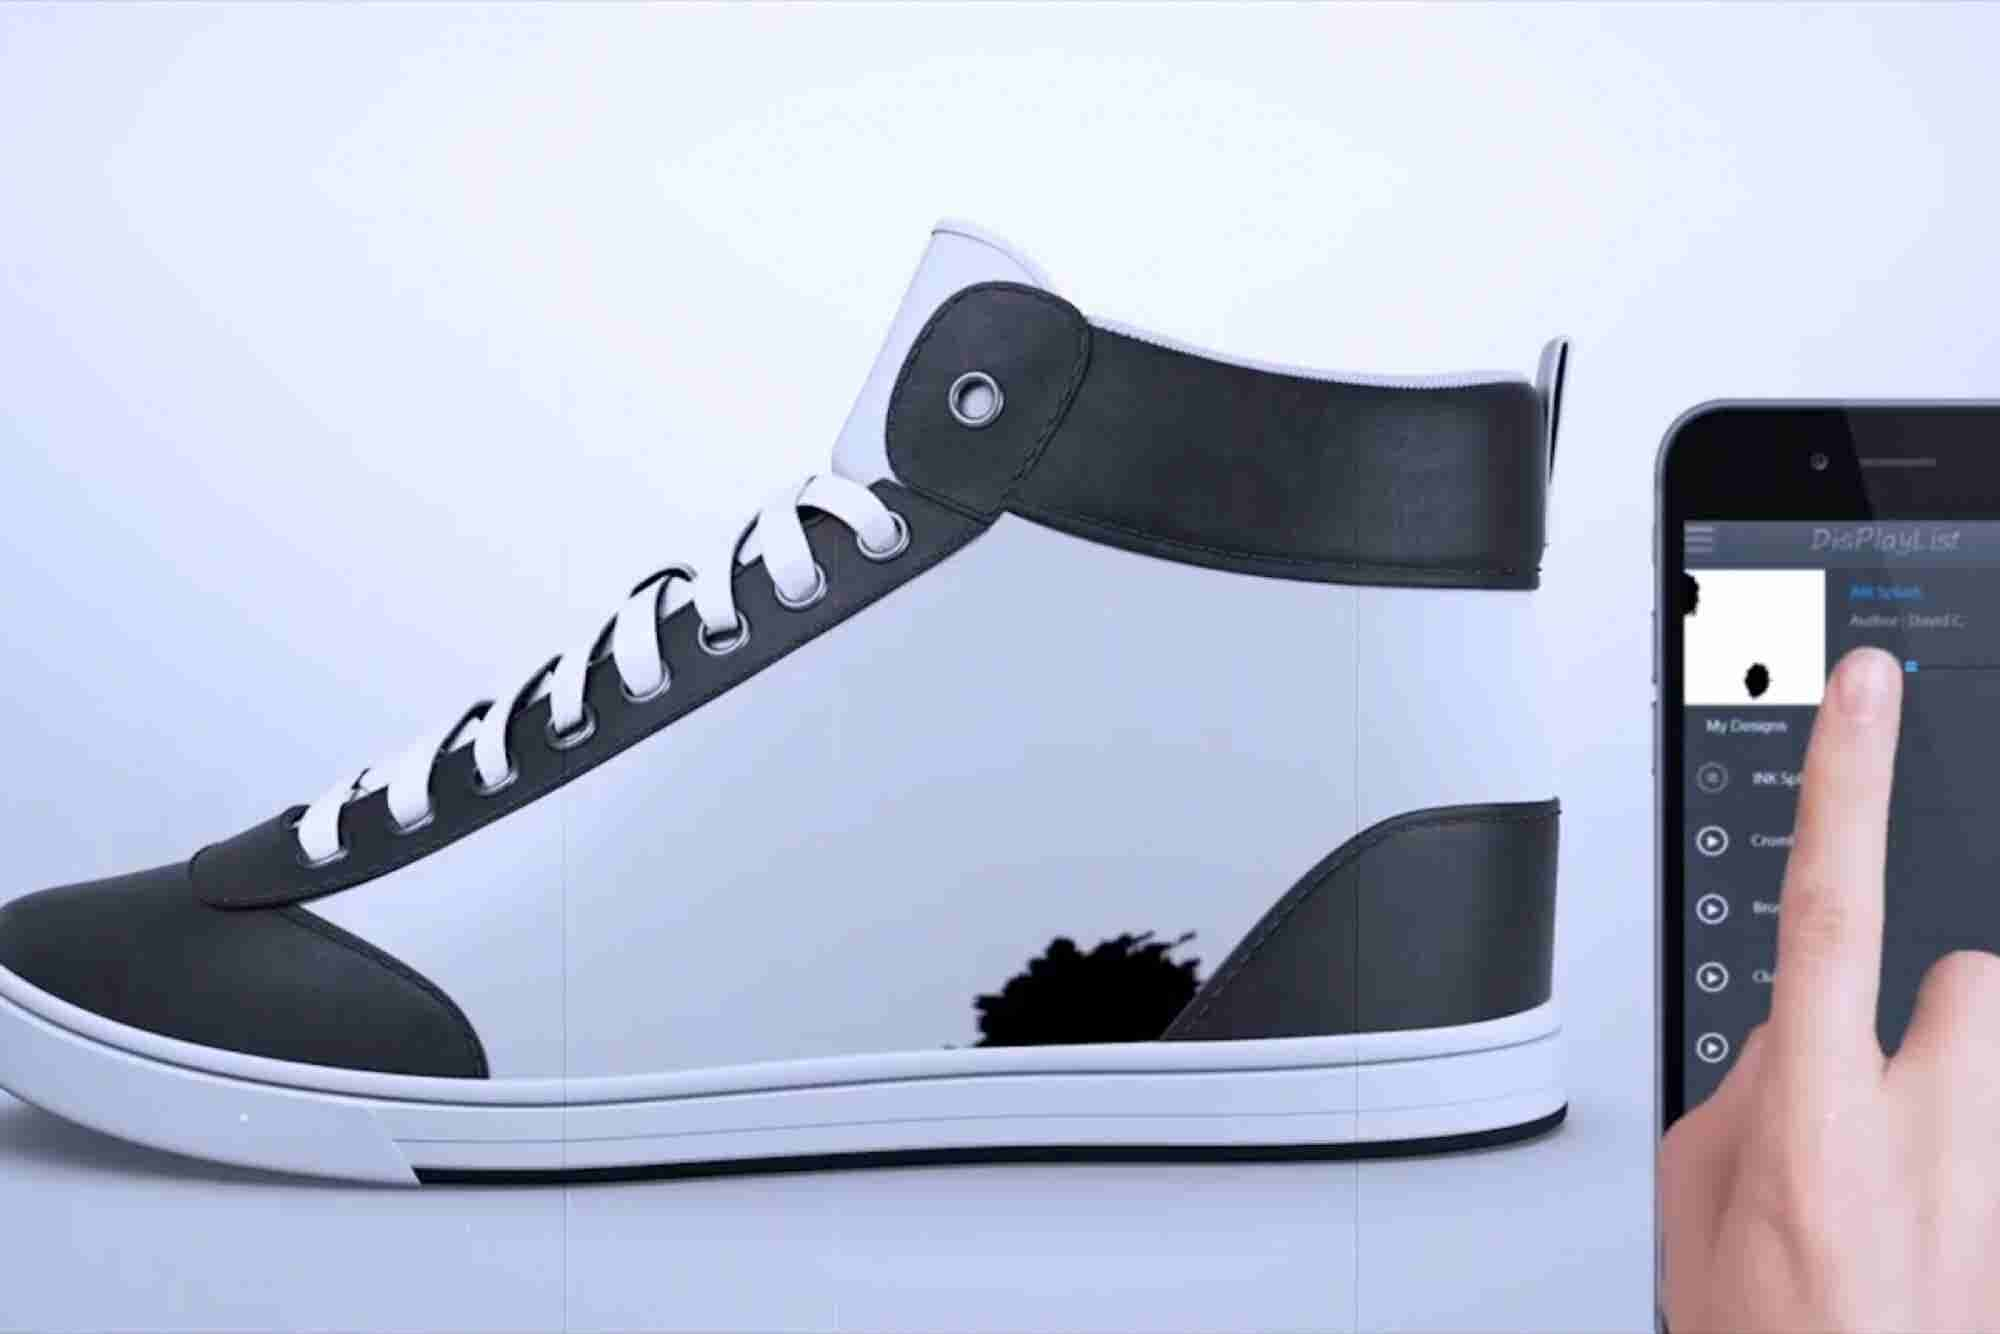 High-Tech Sneakers Raise More Than $300,000 on Indiegogo